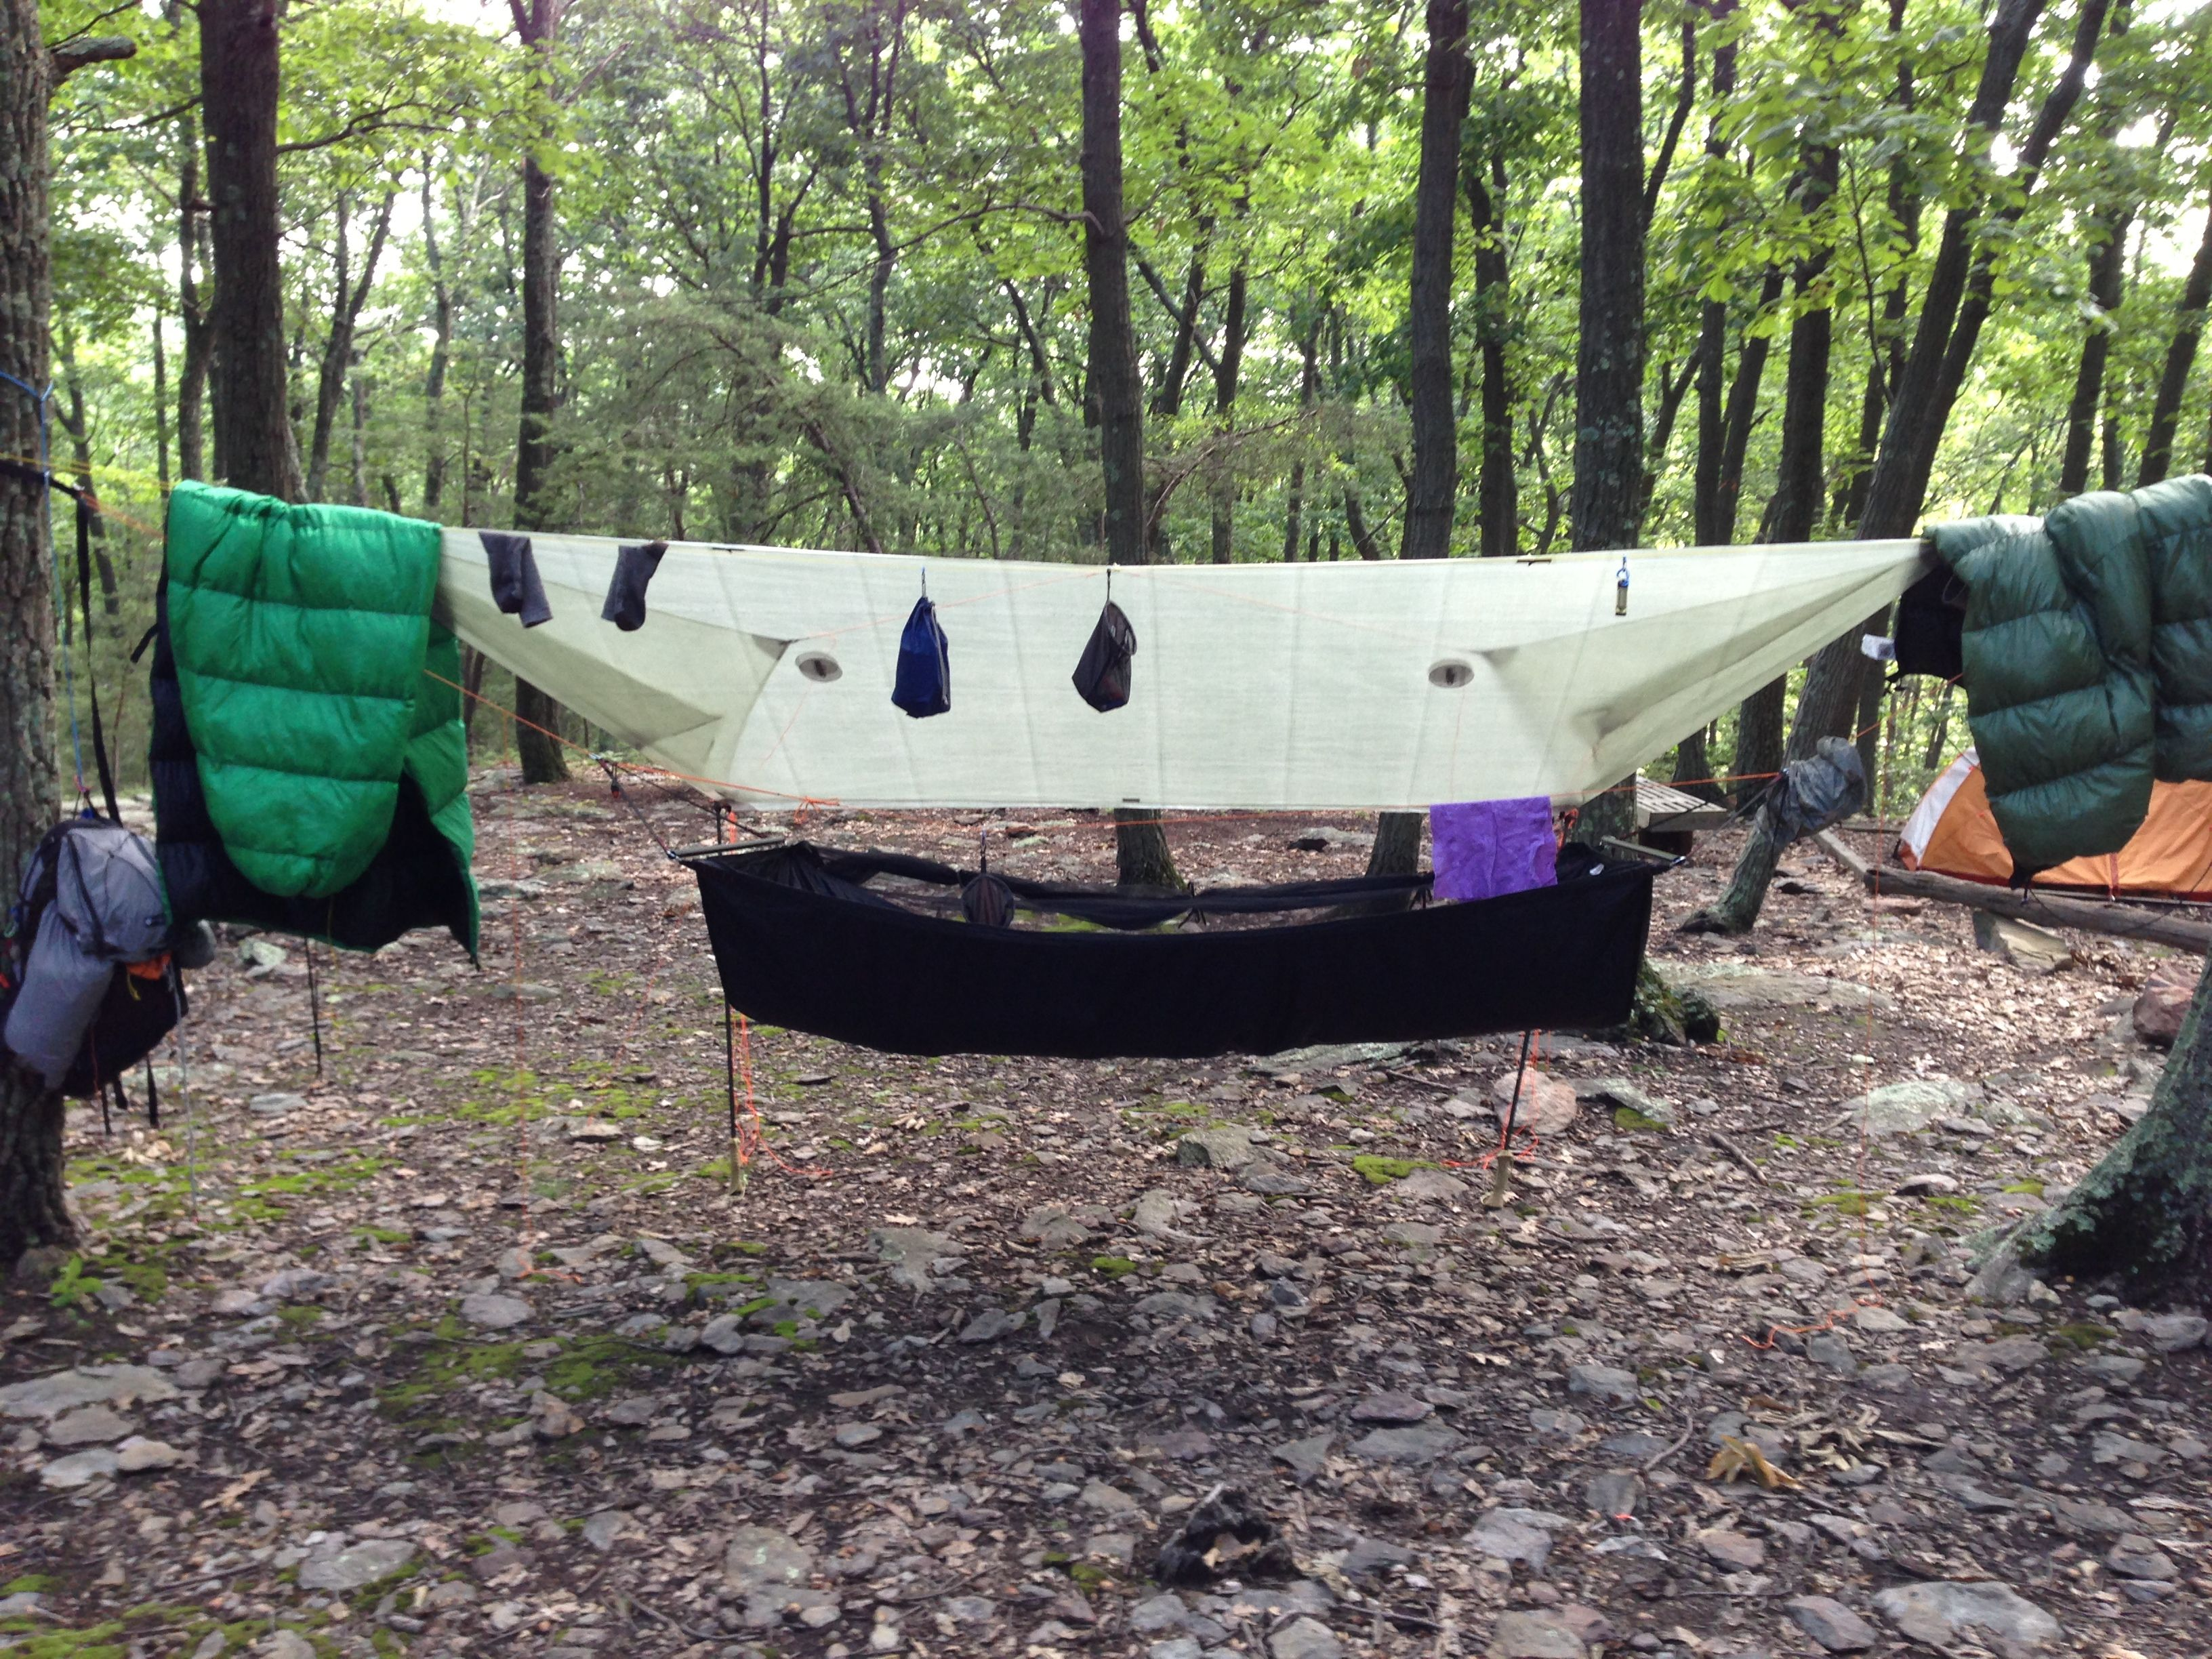 cuben fiber tarp from hammock gear cuben fiber tarp from hammock gear   hammock forums gallery  rh   hammockforums